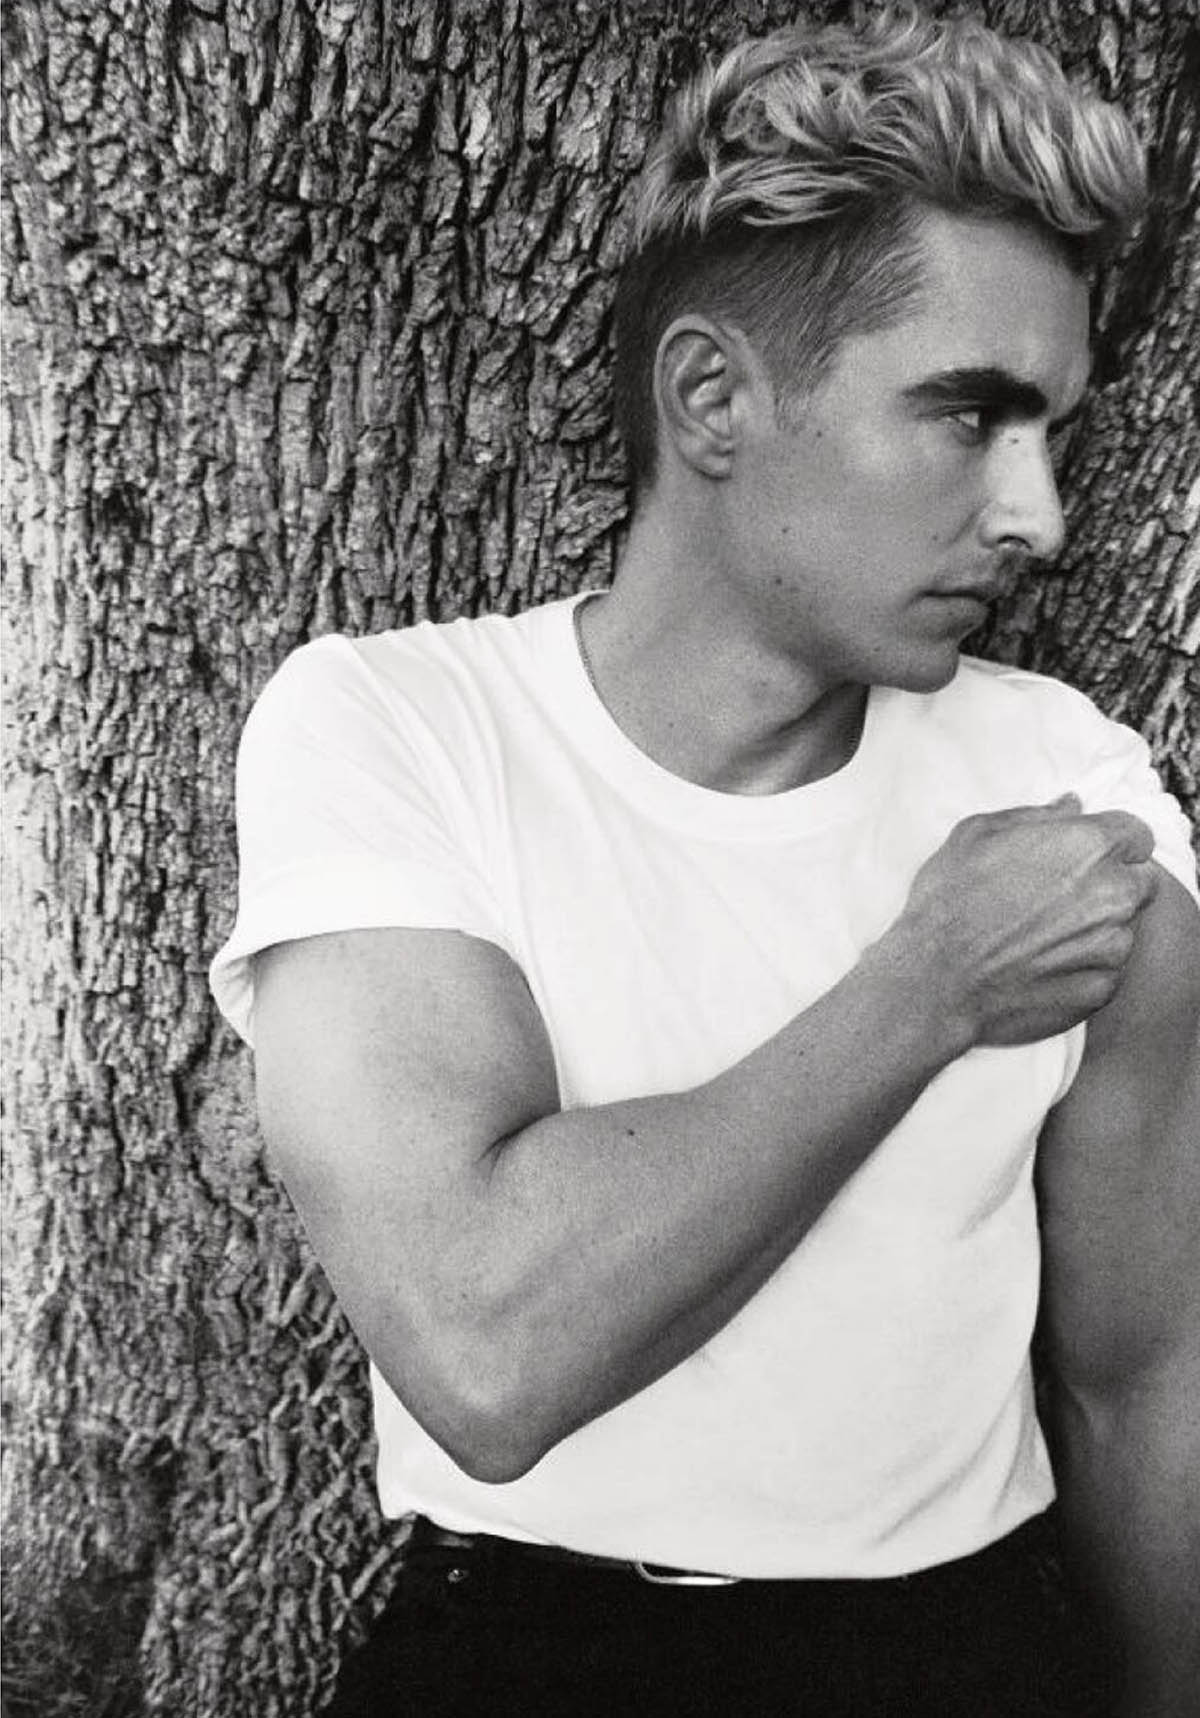 Dave Franco covers Icon Italia Issue 64 by Cameron McCool